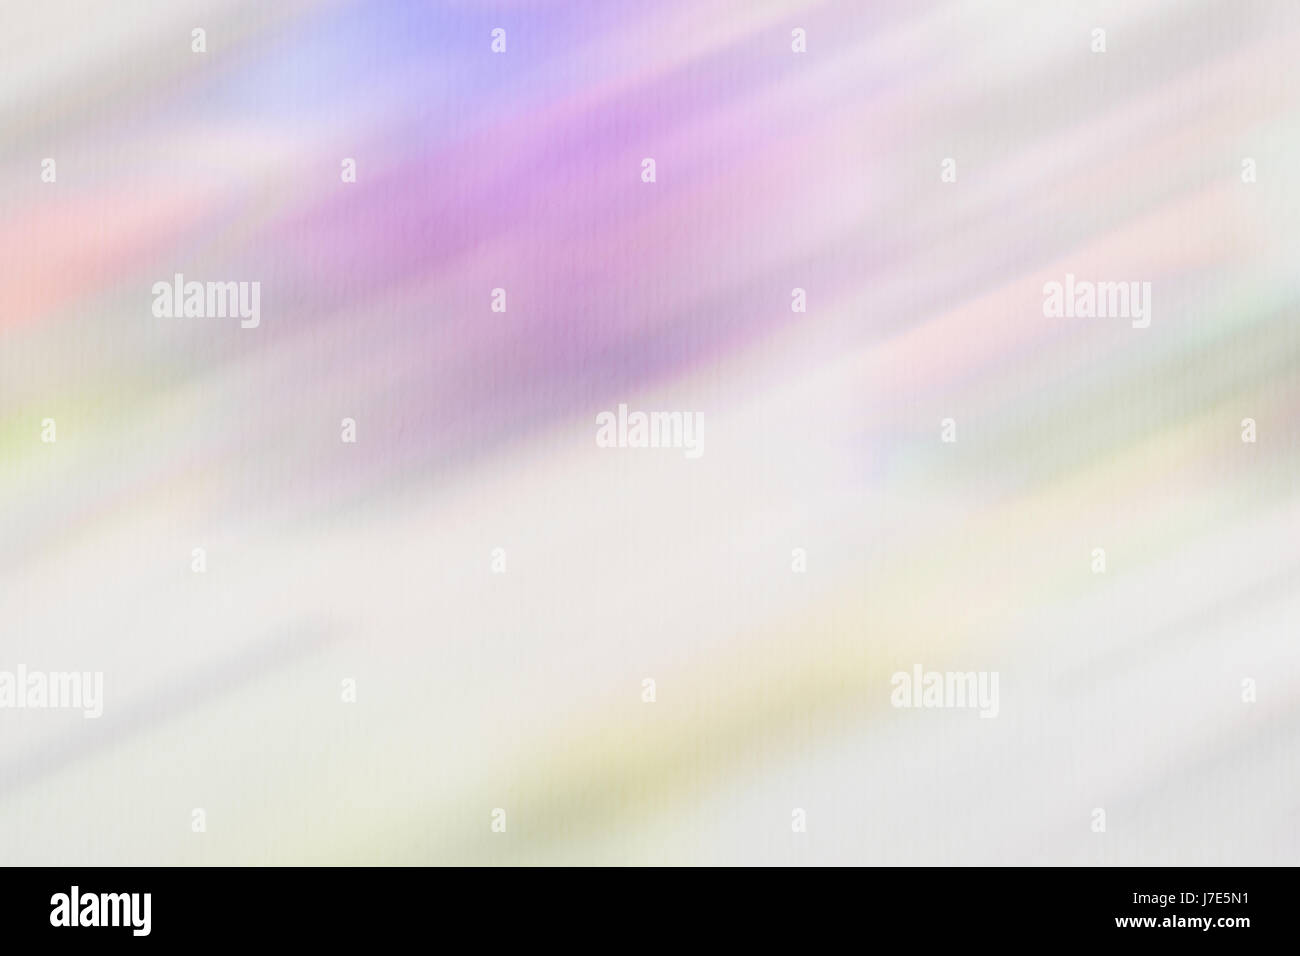 Abstract background, watercolor paper grain texture. Tender shades. For modern backdrop, wallpaper, banner design, - Stock Image